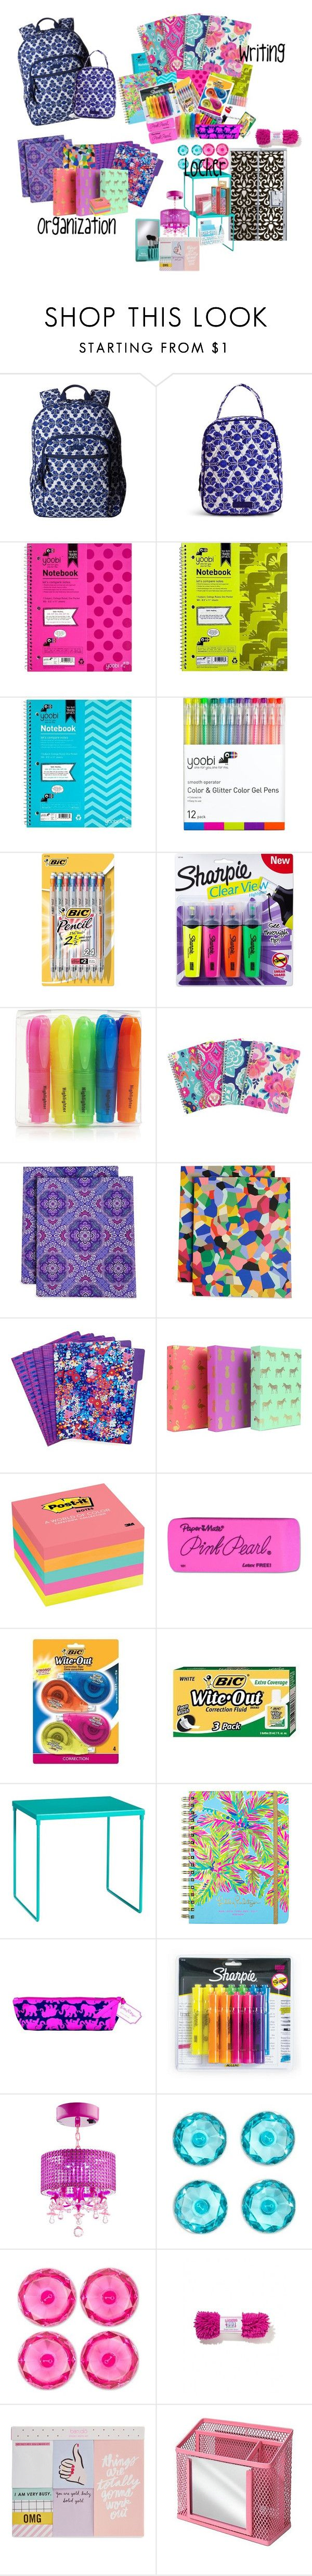 """""""Layla's School Supplies"""" by dreamfamily ❤ liked on Polyvore featuring Vera Bradley, Yoobi, BIC, Sharpie, Post-It, Paper Mate, Lilly Pulitzer, ban.do, U Brands and TheSanchezFamily"""